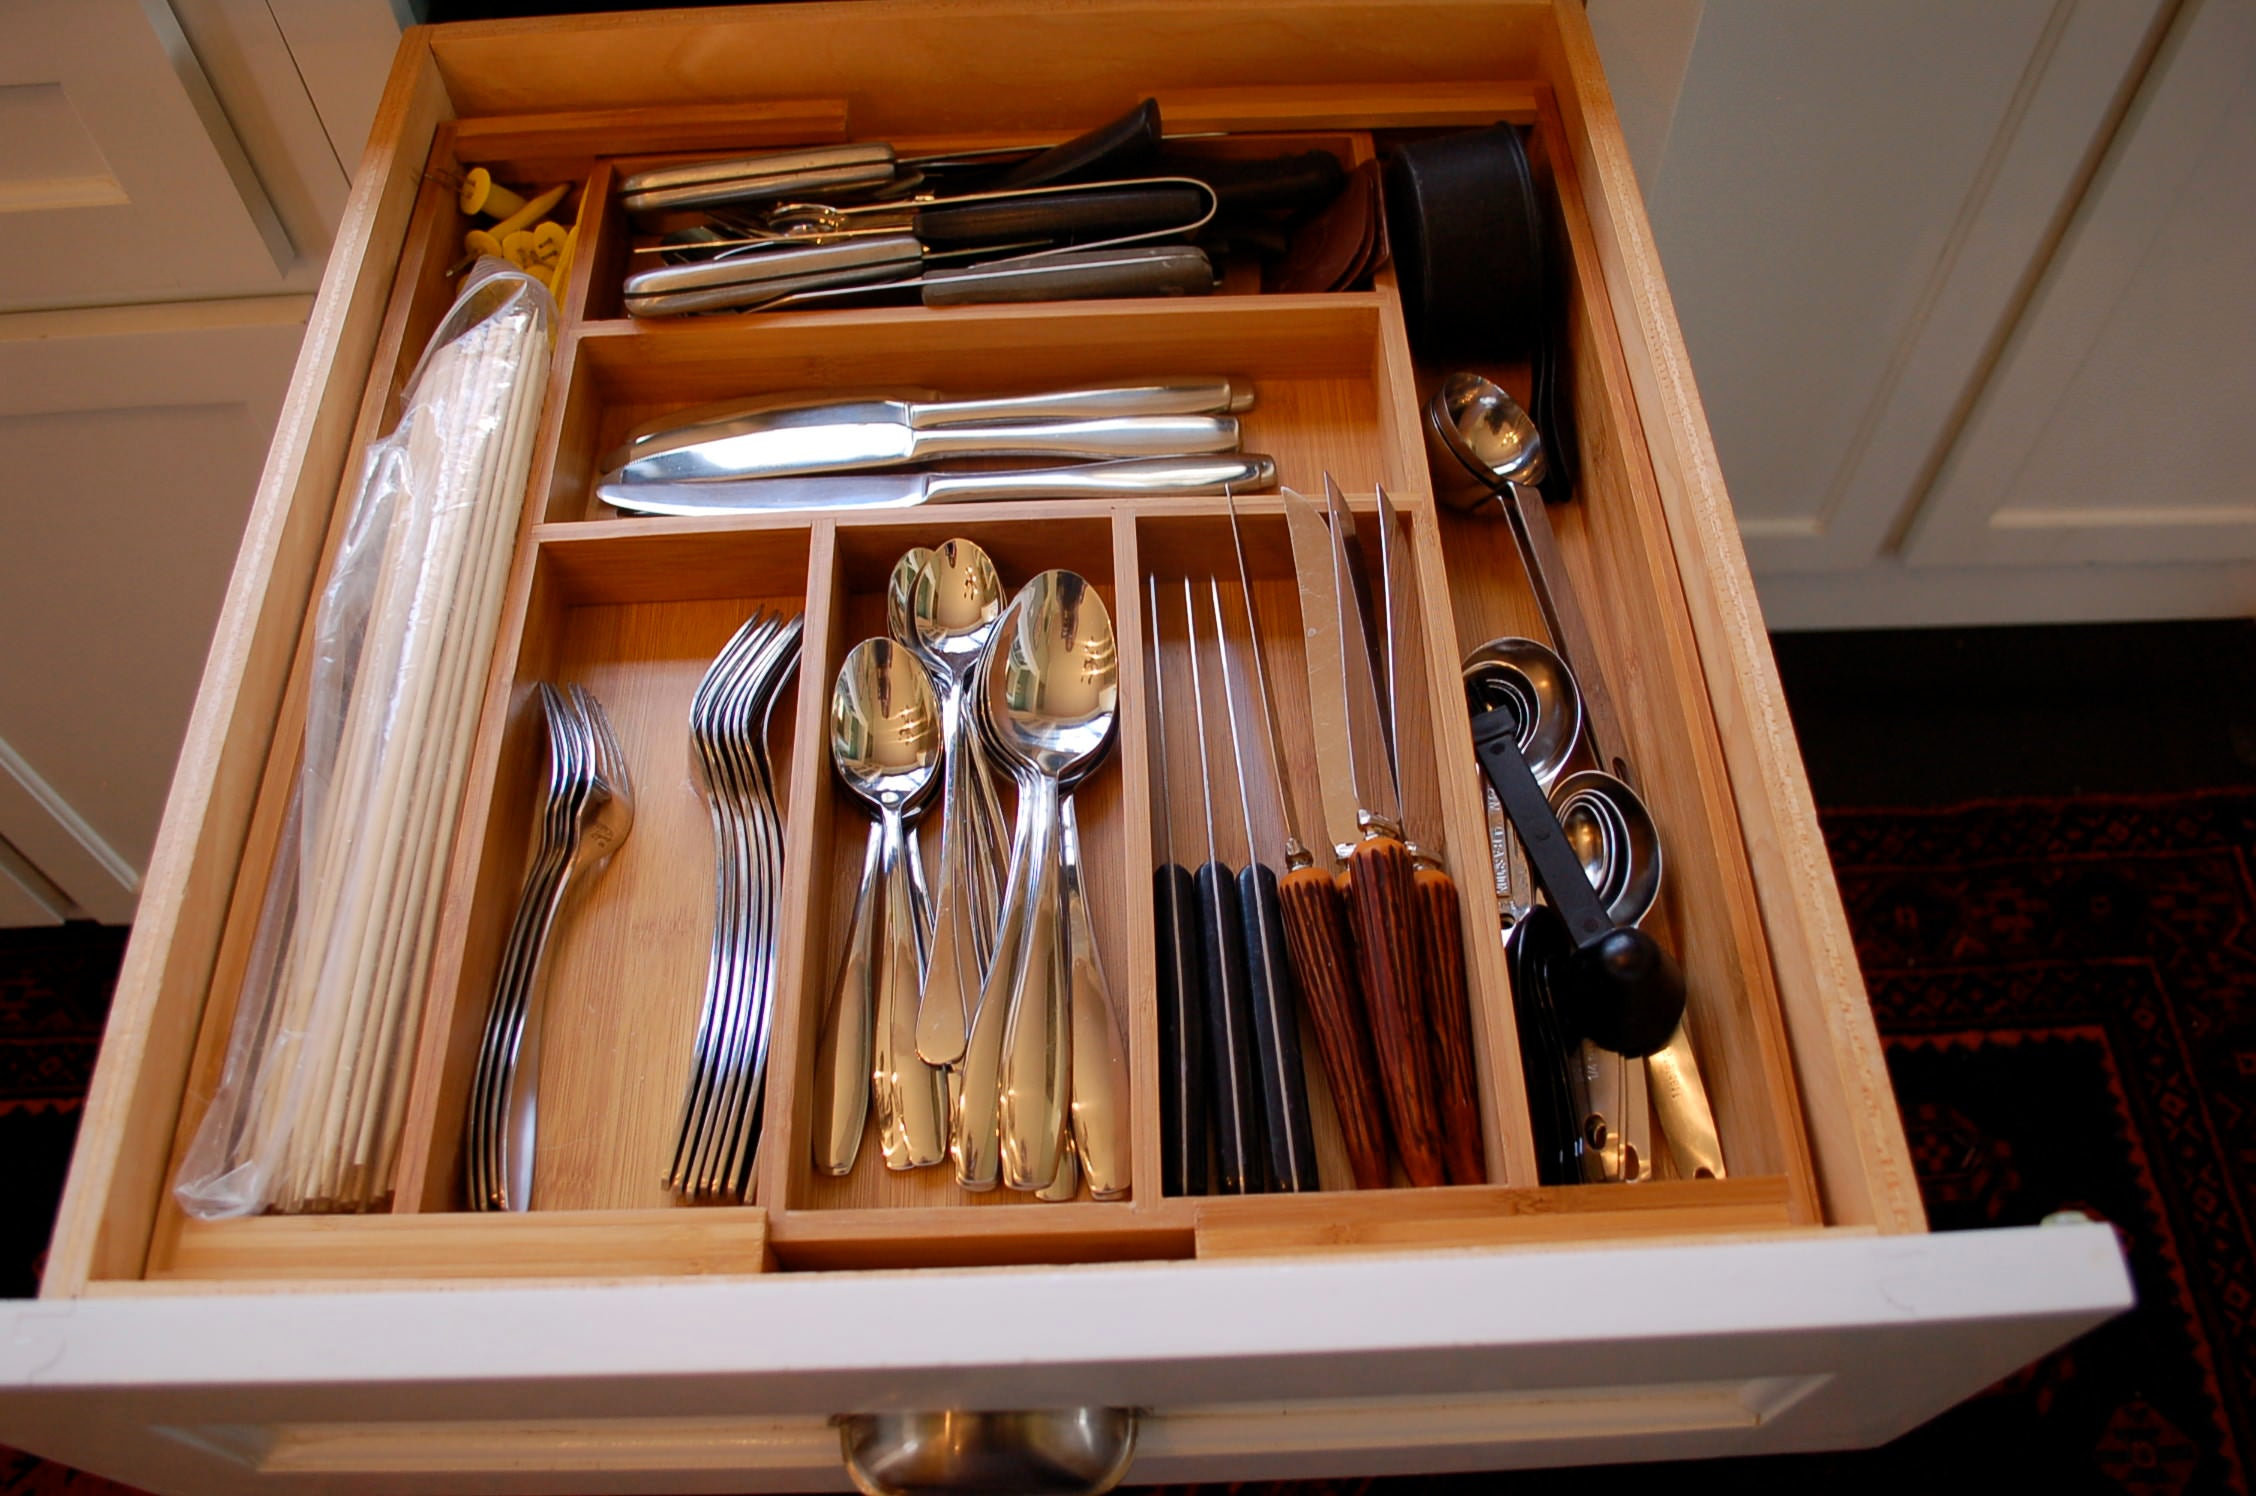 organized, bamboo insert, drawer insert, organized kitchen